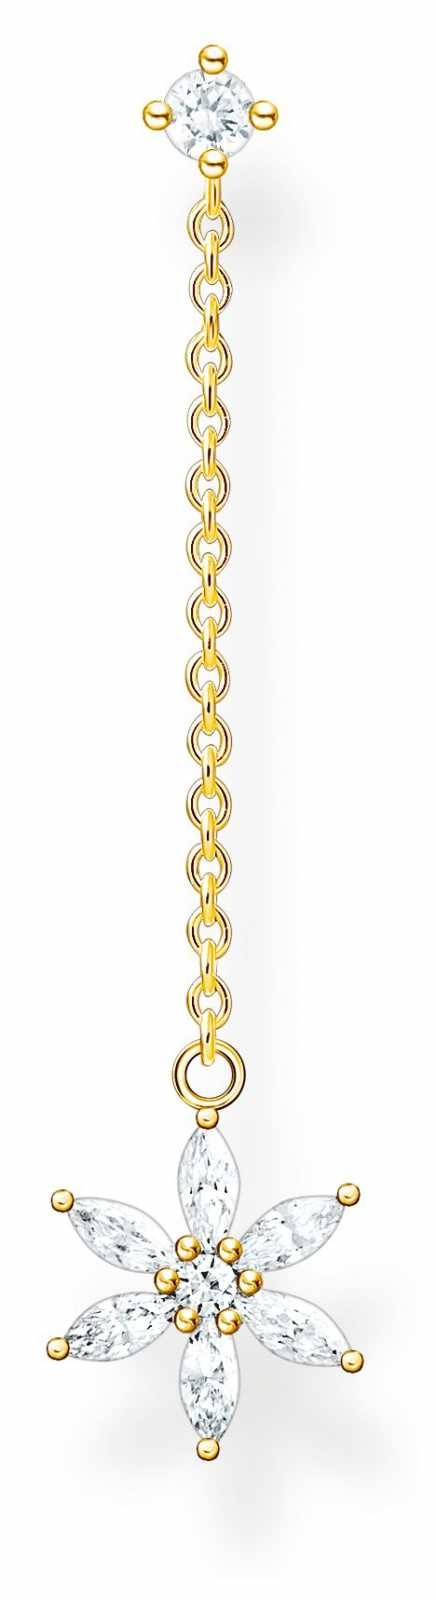 Thomas Sabo Happy Moments | Filigree Flower Single Drop Stud Earring | Gold Plated H2198-414-14